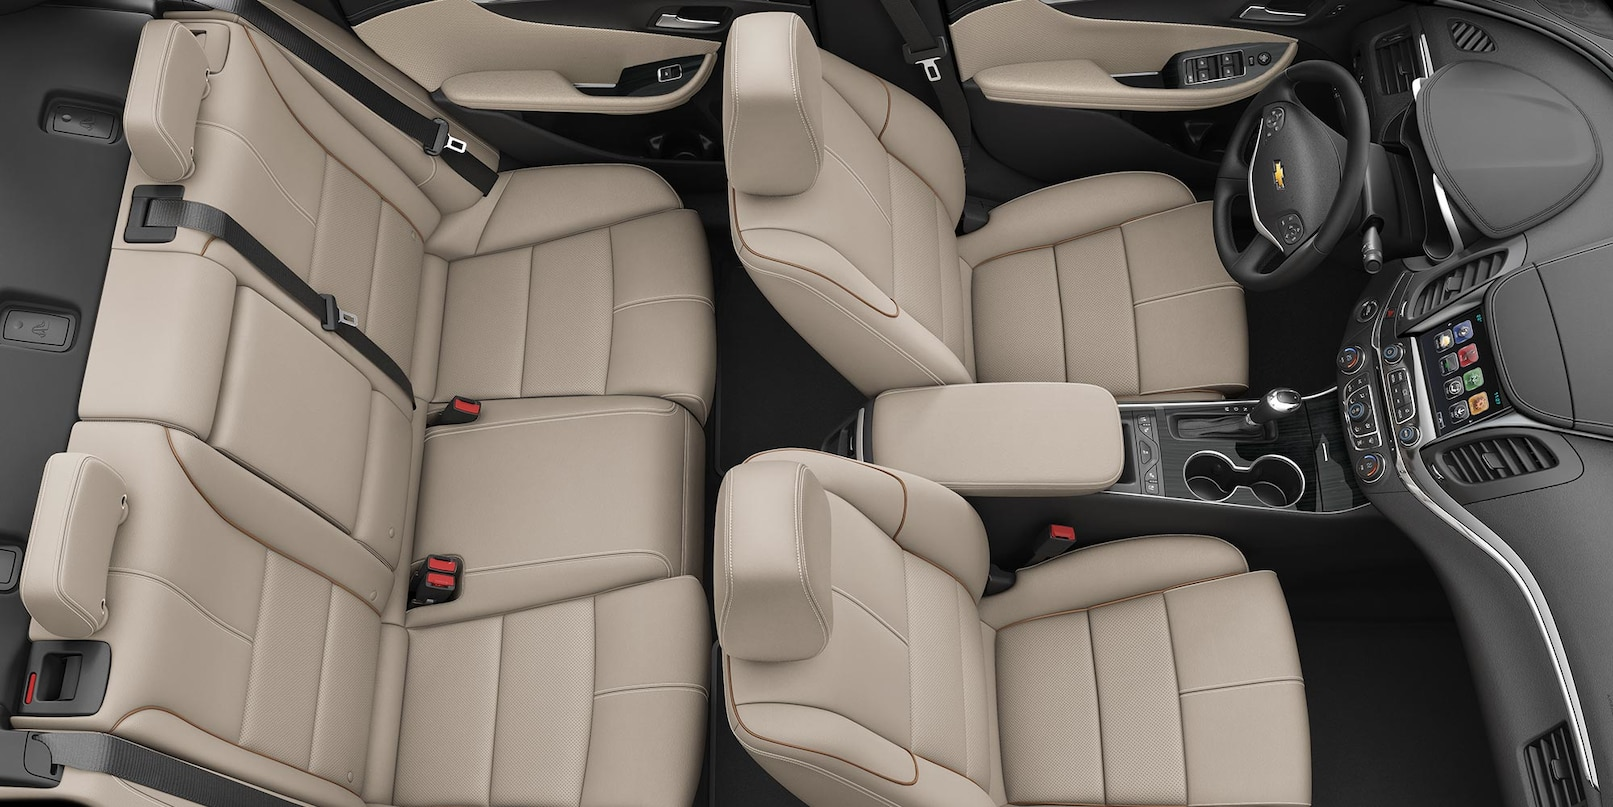 Comfort and Luxury in the Chevrolet Impala